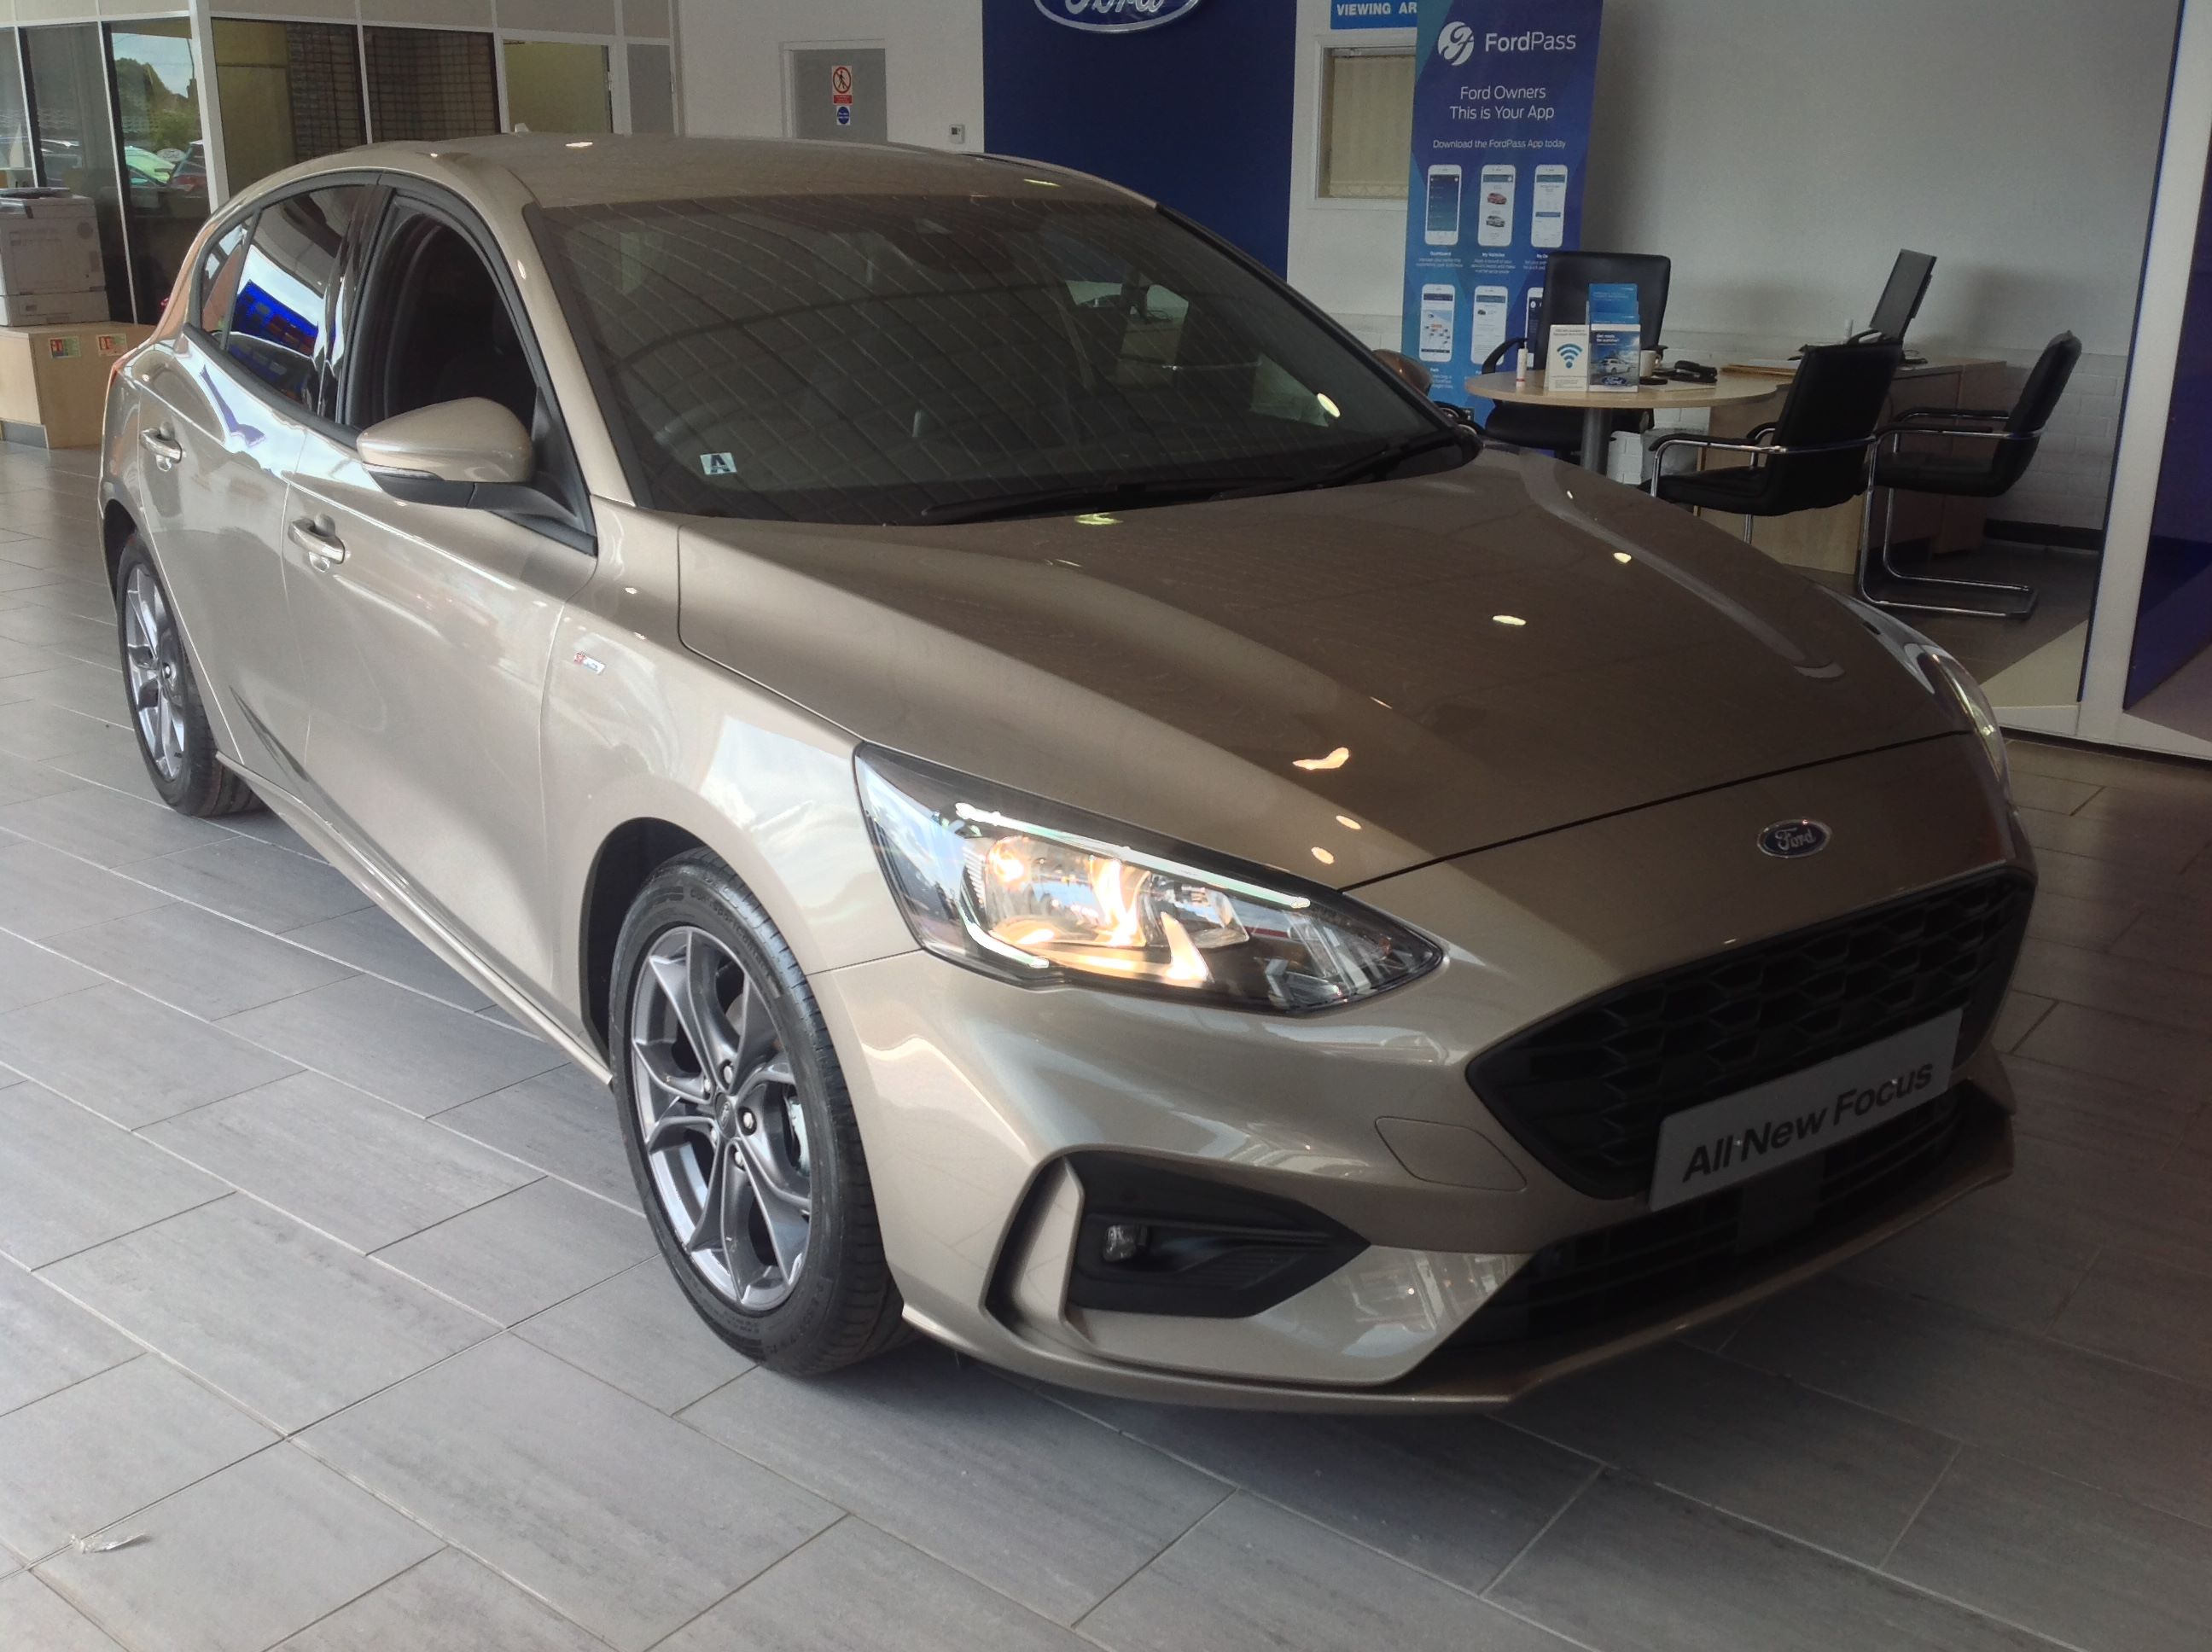 The All-New Ford Focus has landed at Abbeygate